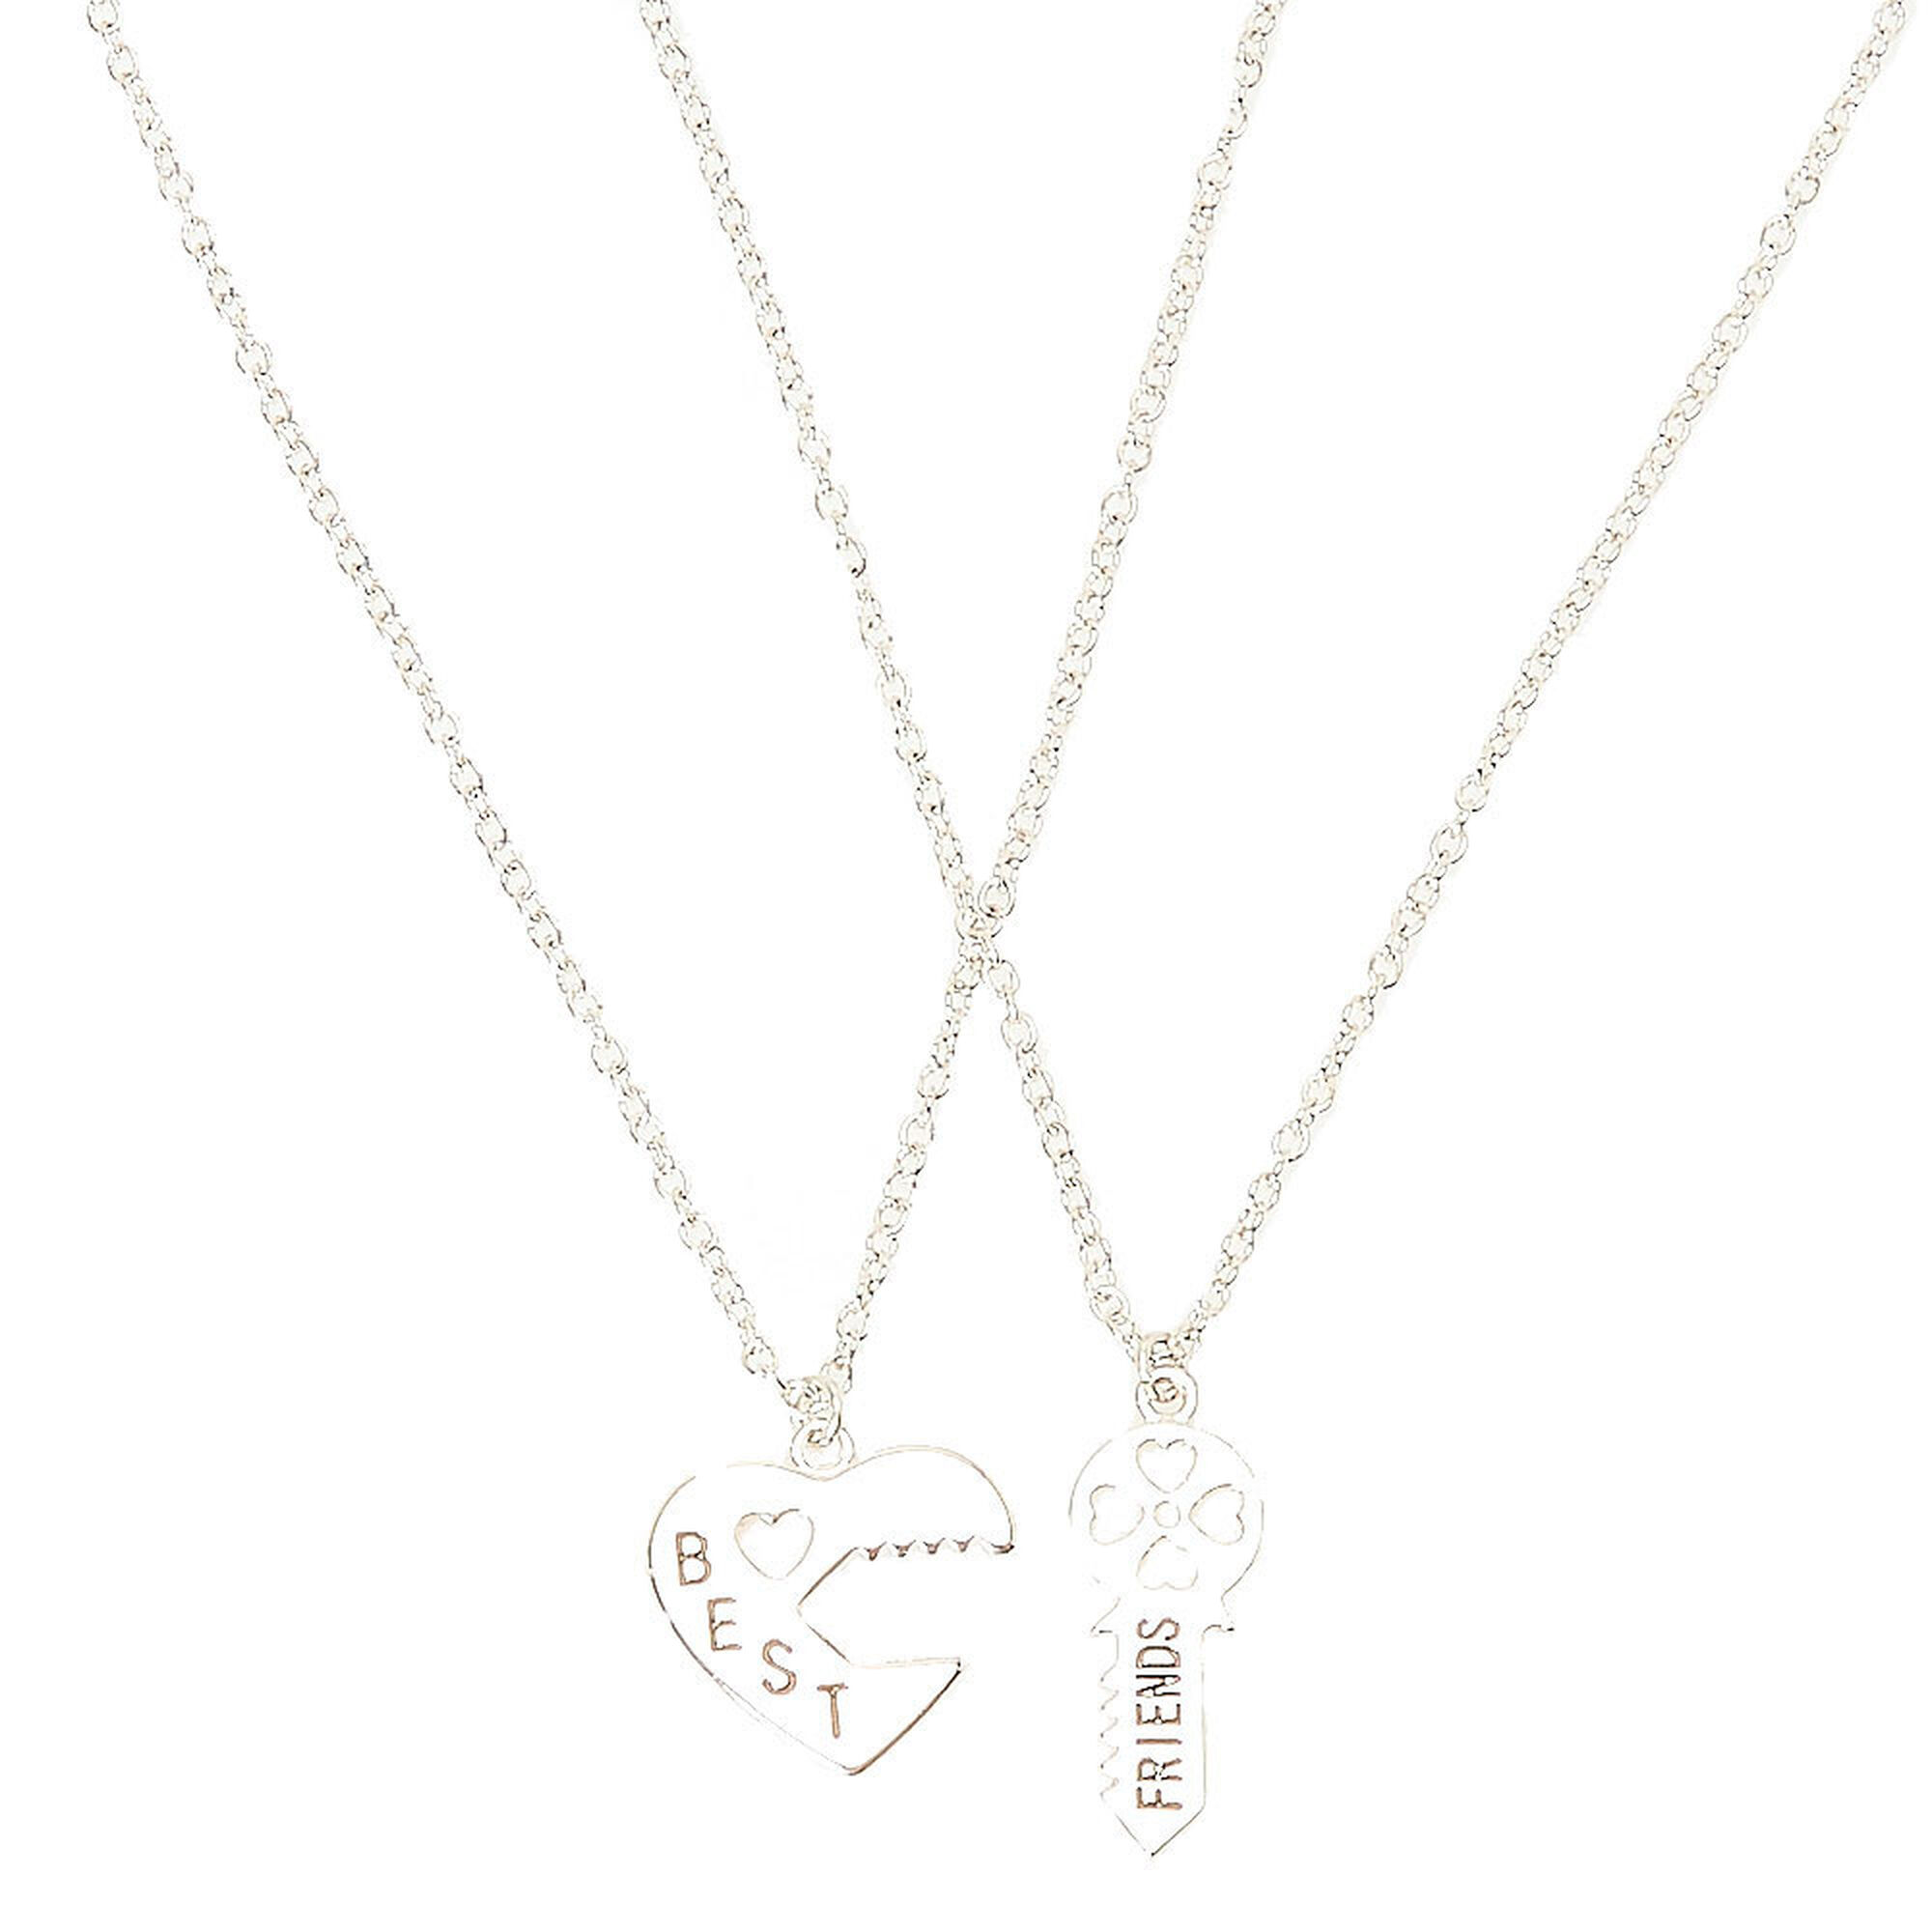 the giving style fearless keys key gold shop is jewelry classic necklace simple